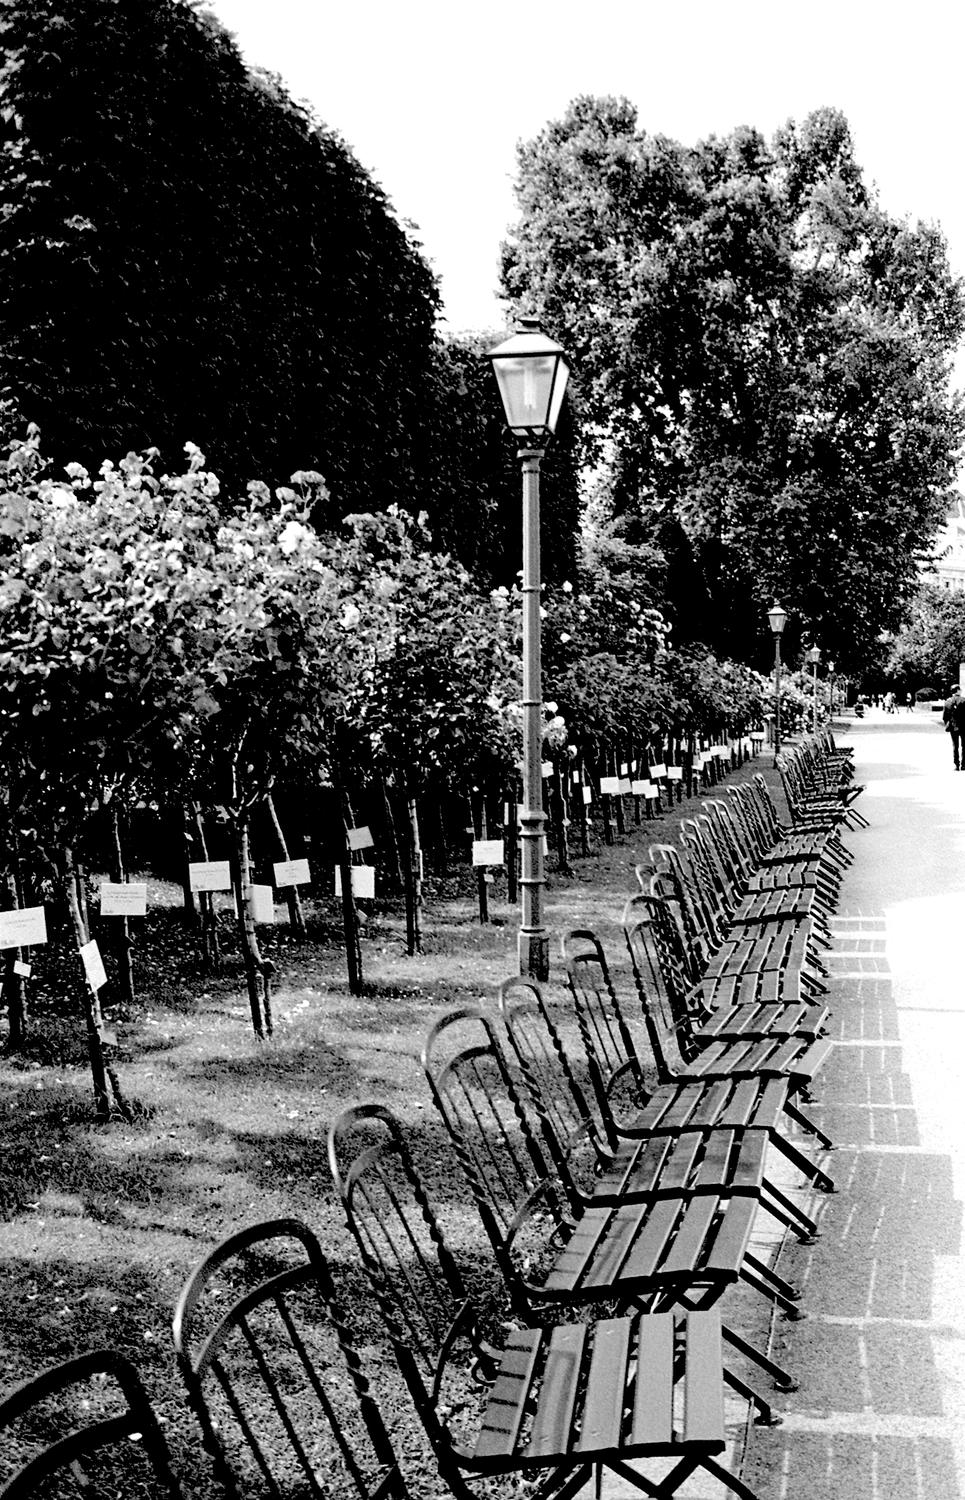 Lamppost by Chairs, Vienna 2017   Edition 1 of 2